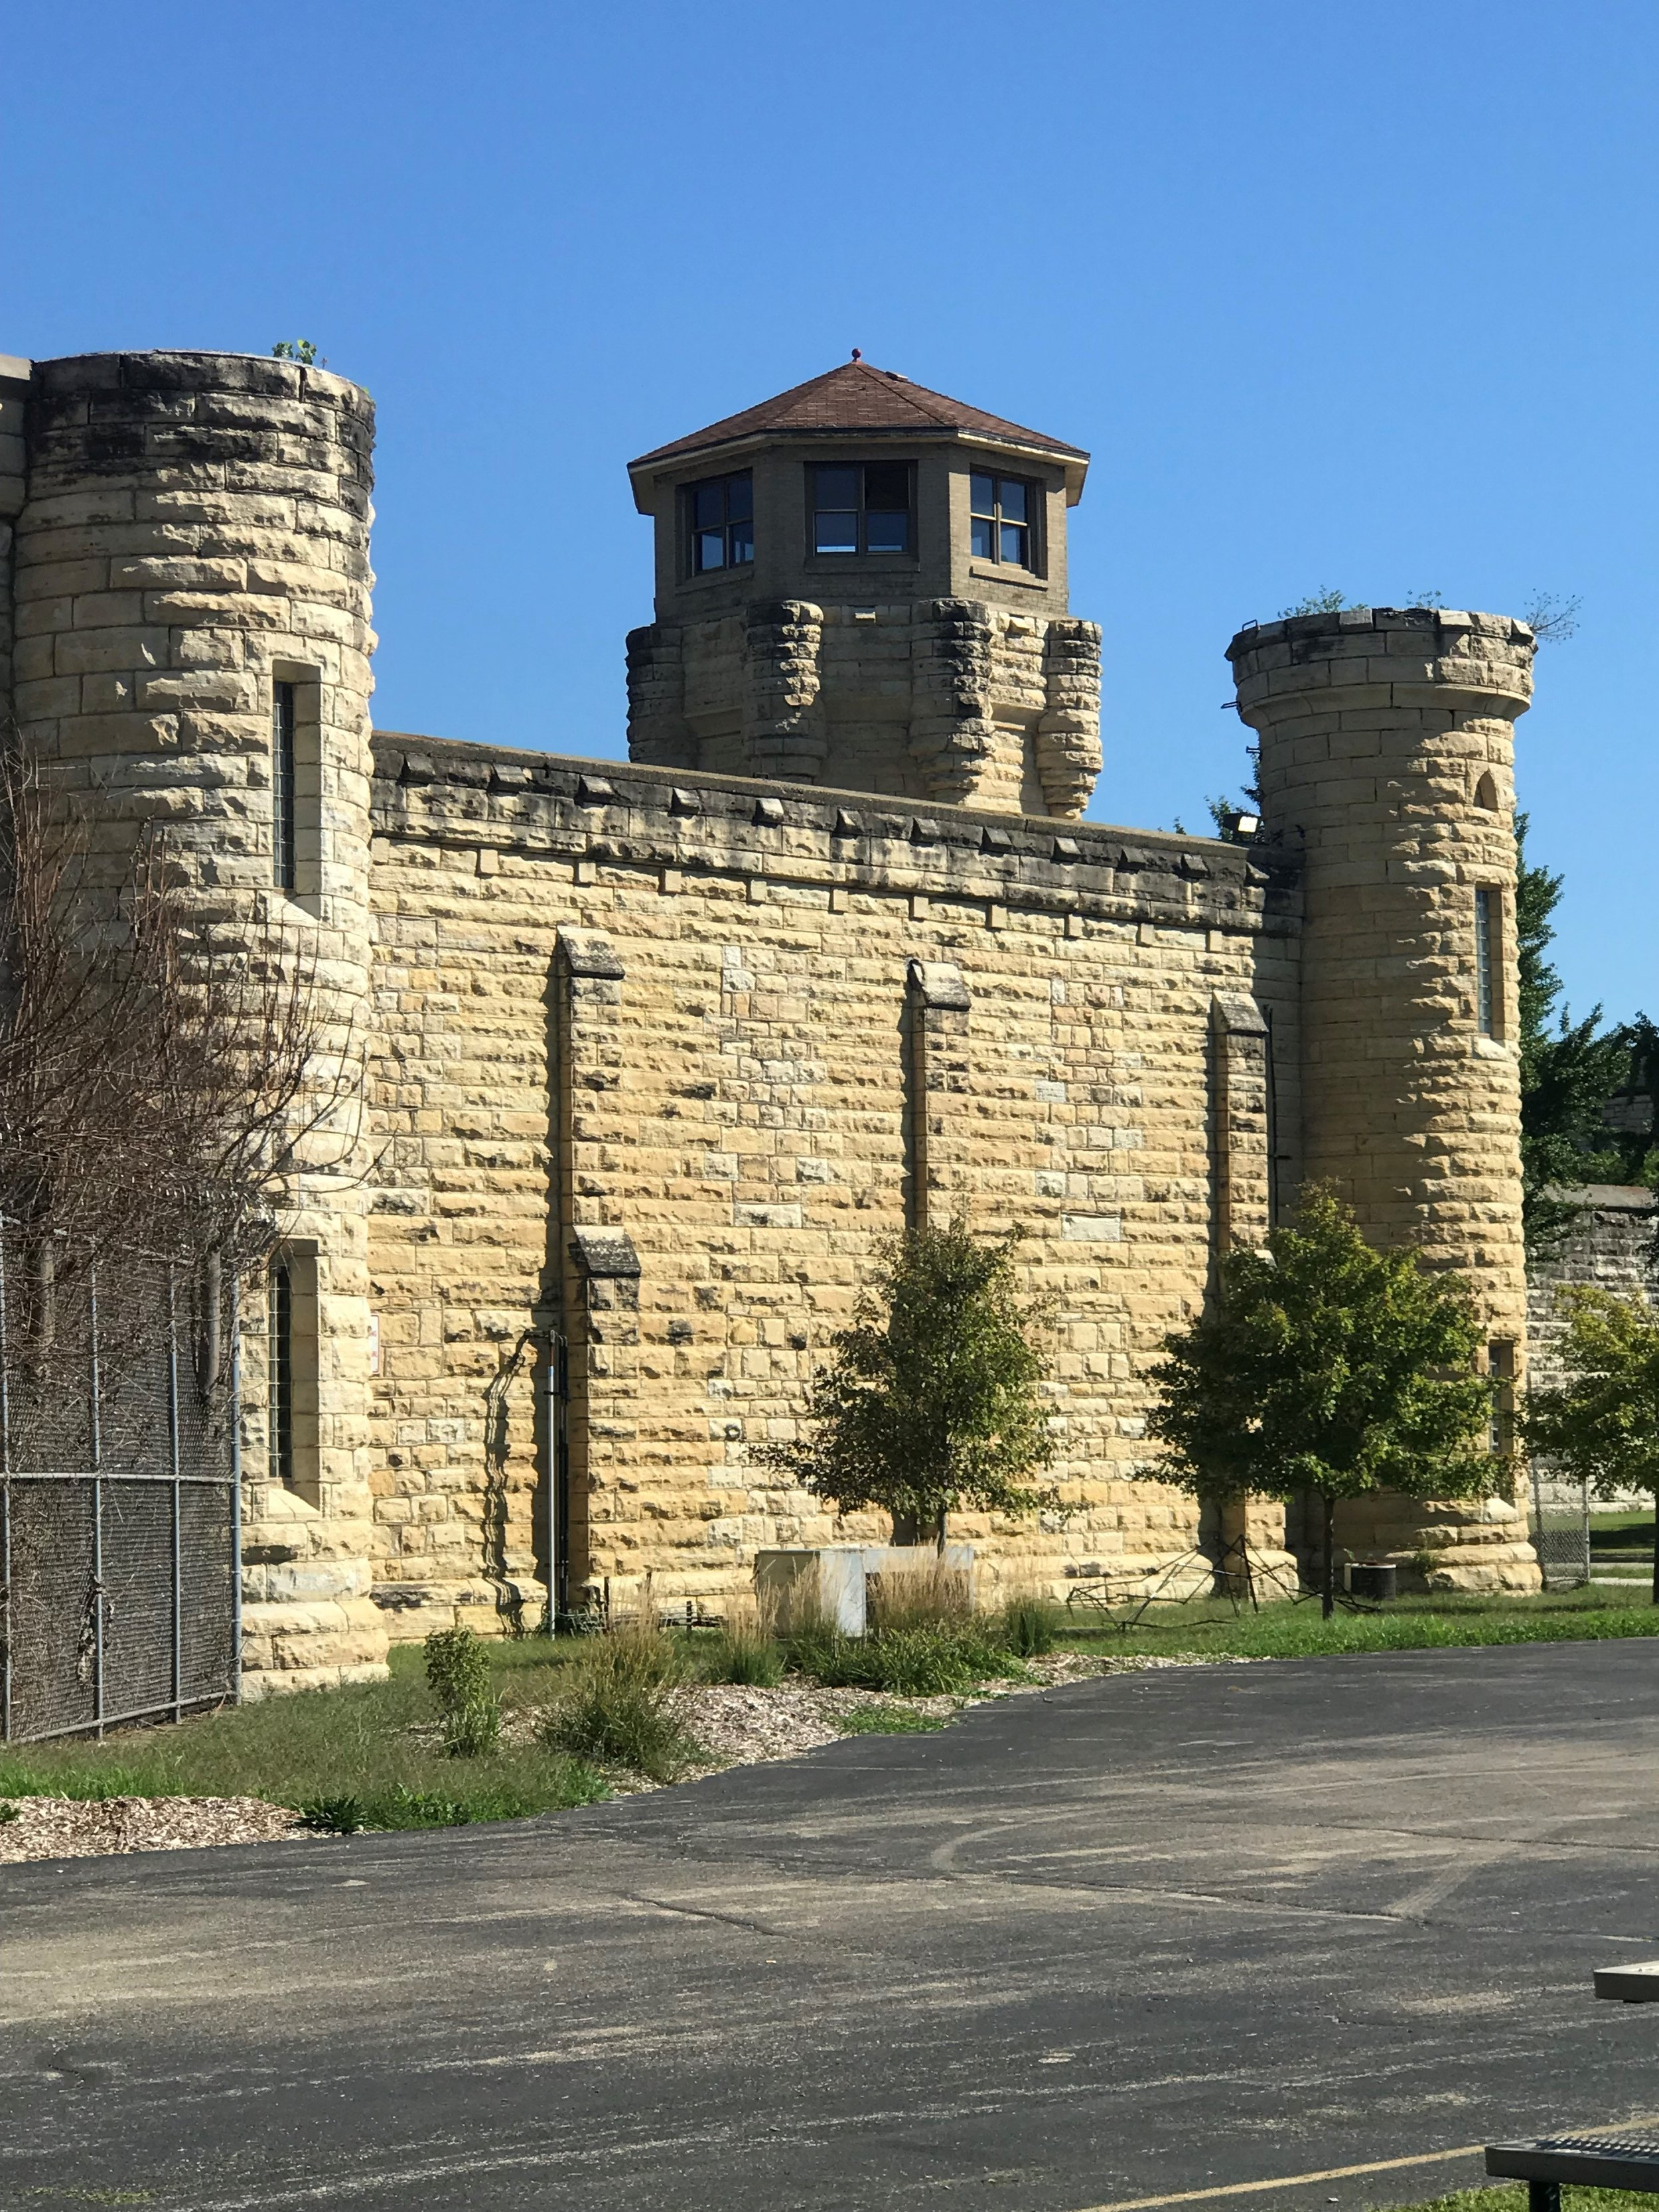 The Joliet Historical Museum offers prison tours on Thursday, Saturday, and Sunday; starting in June the museum will add Tuesdays to the weekly tour schedule.